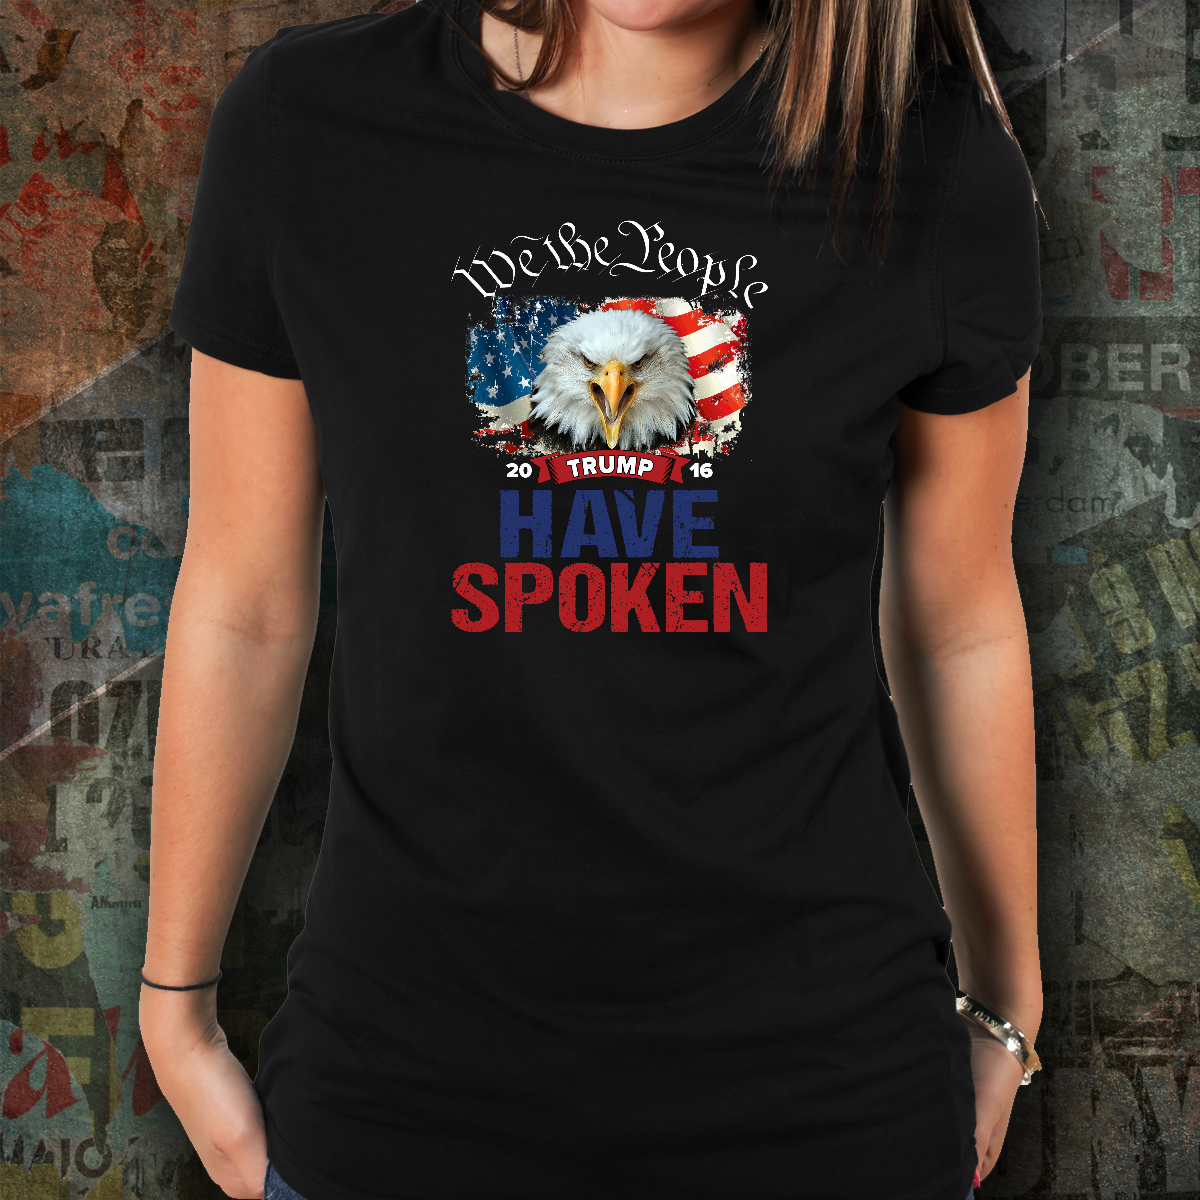 REVISED - We The People - Have Spoken - Women's Tee's & Tanks